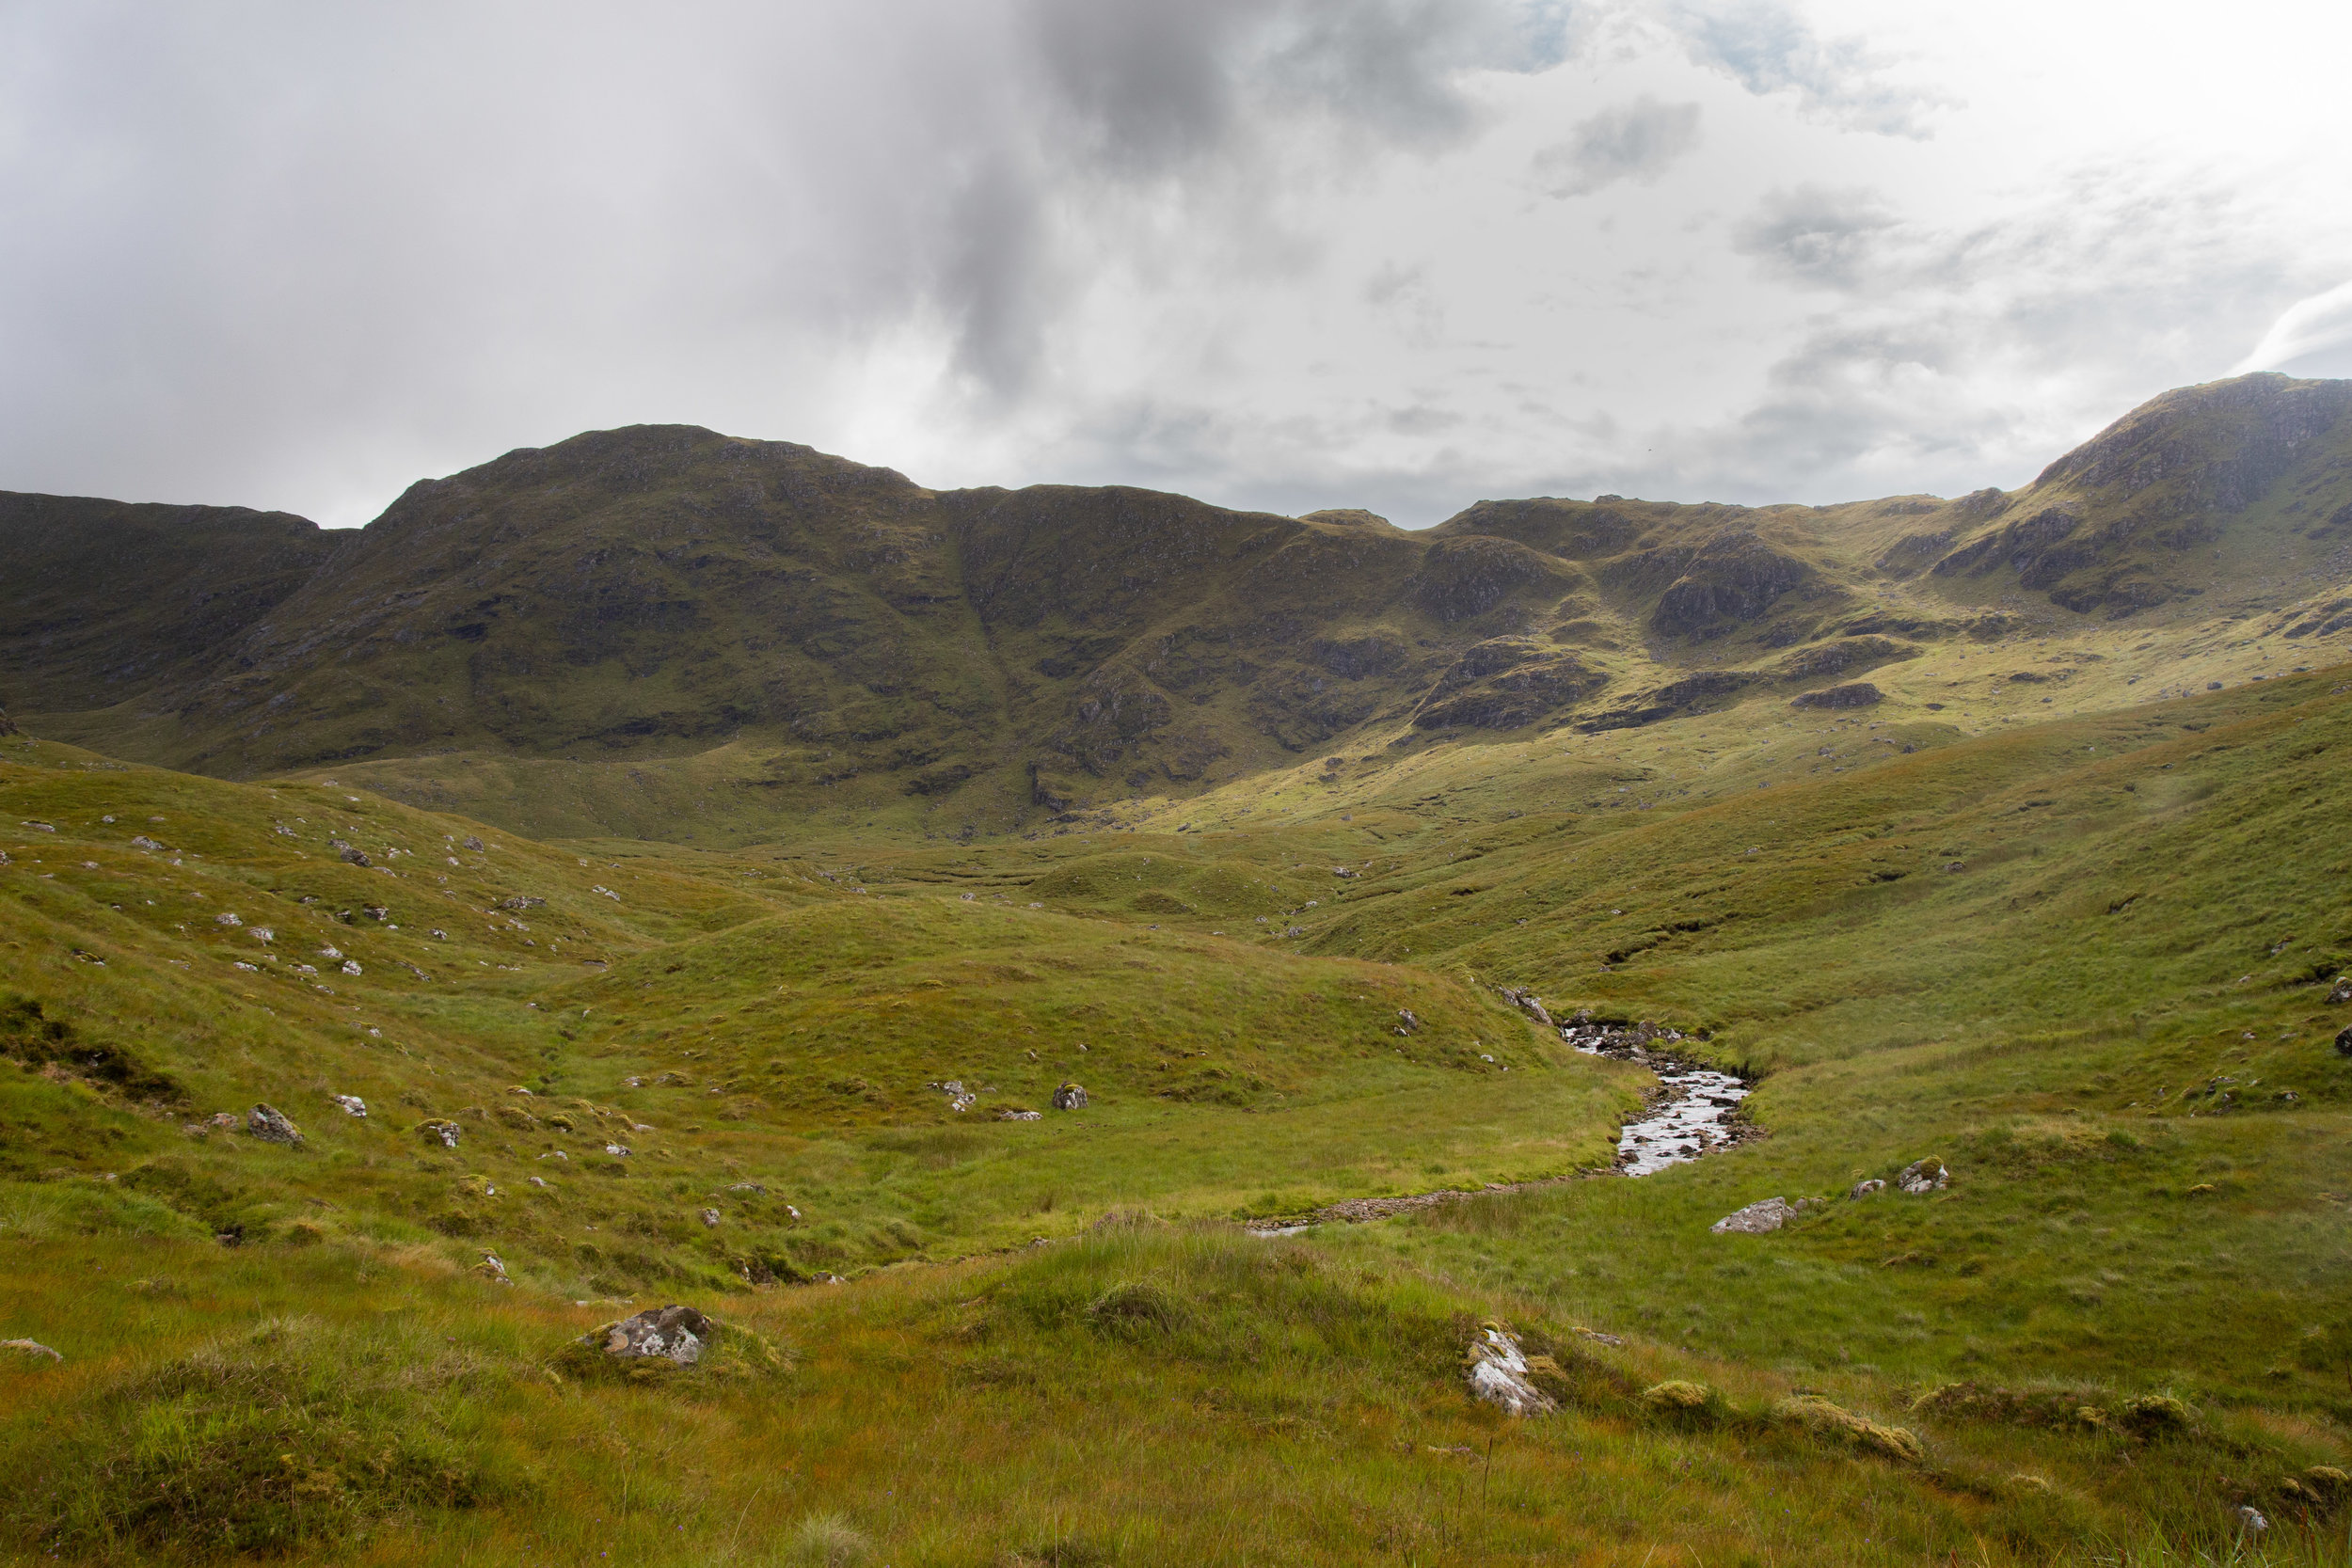 The glen at the bottom of Ladhar Bheinn